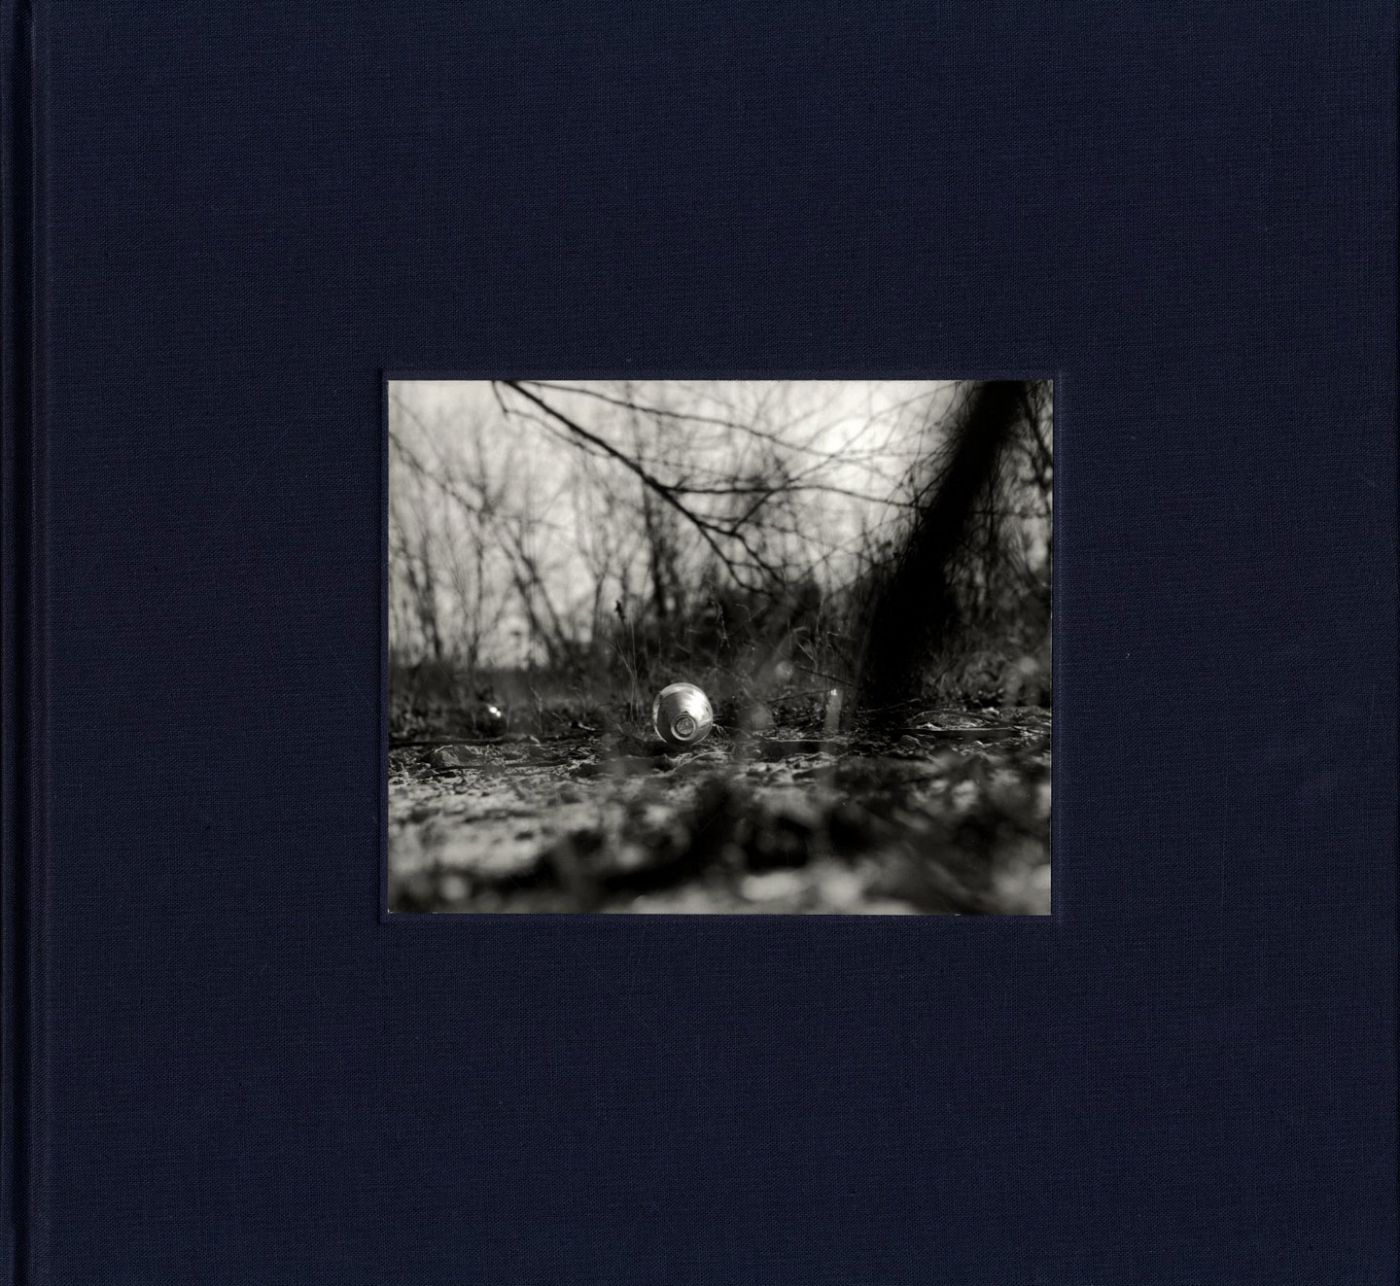 John Gossage: The Pond (Second Edition, Aperture Reissue), Limited Edition Box Set (with Loose and Tipped-In Gelatin Silver Prints)